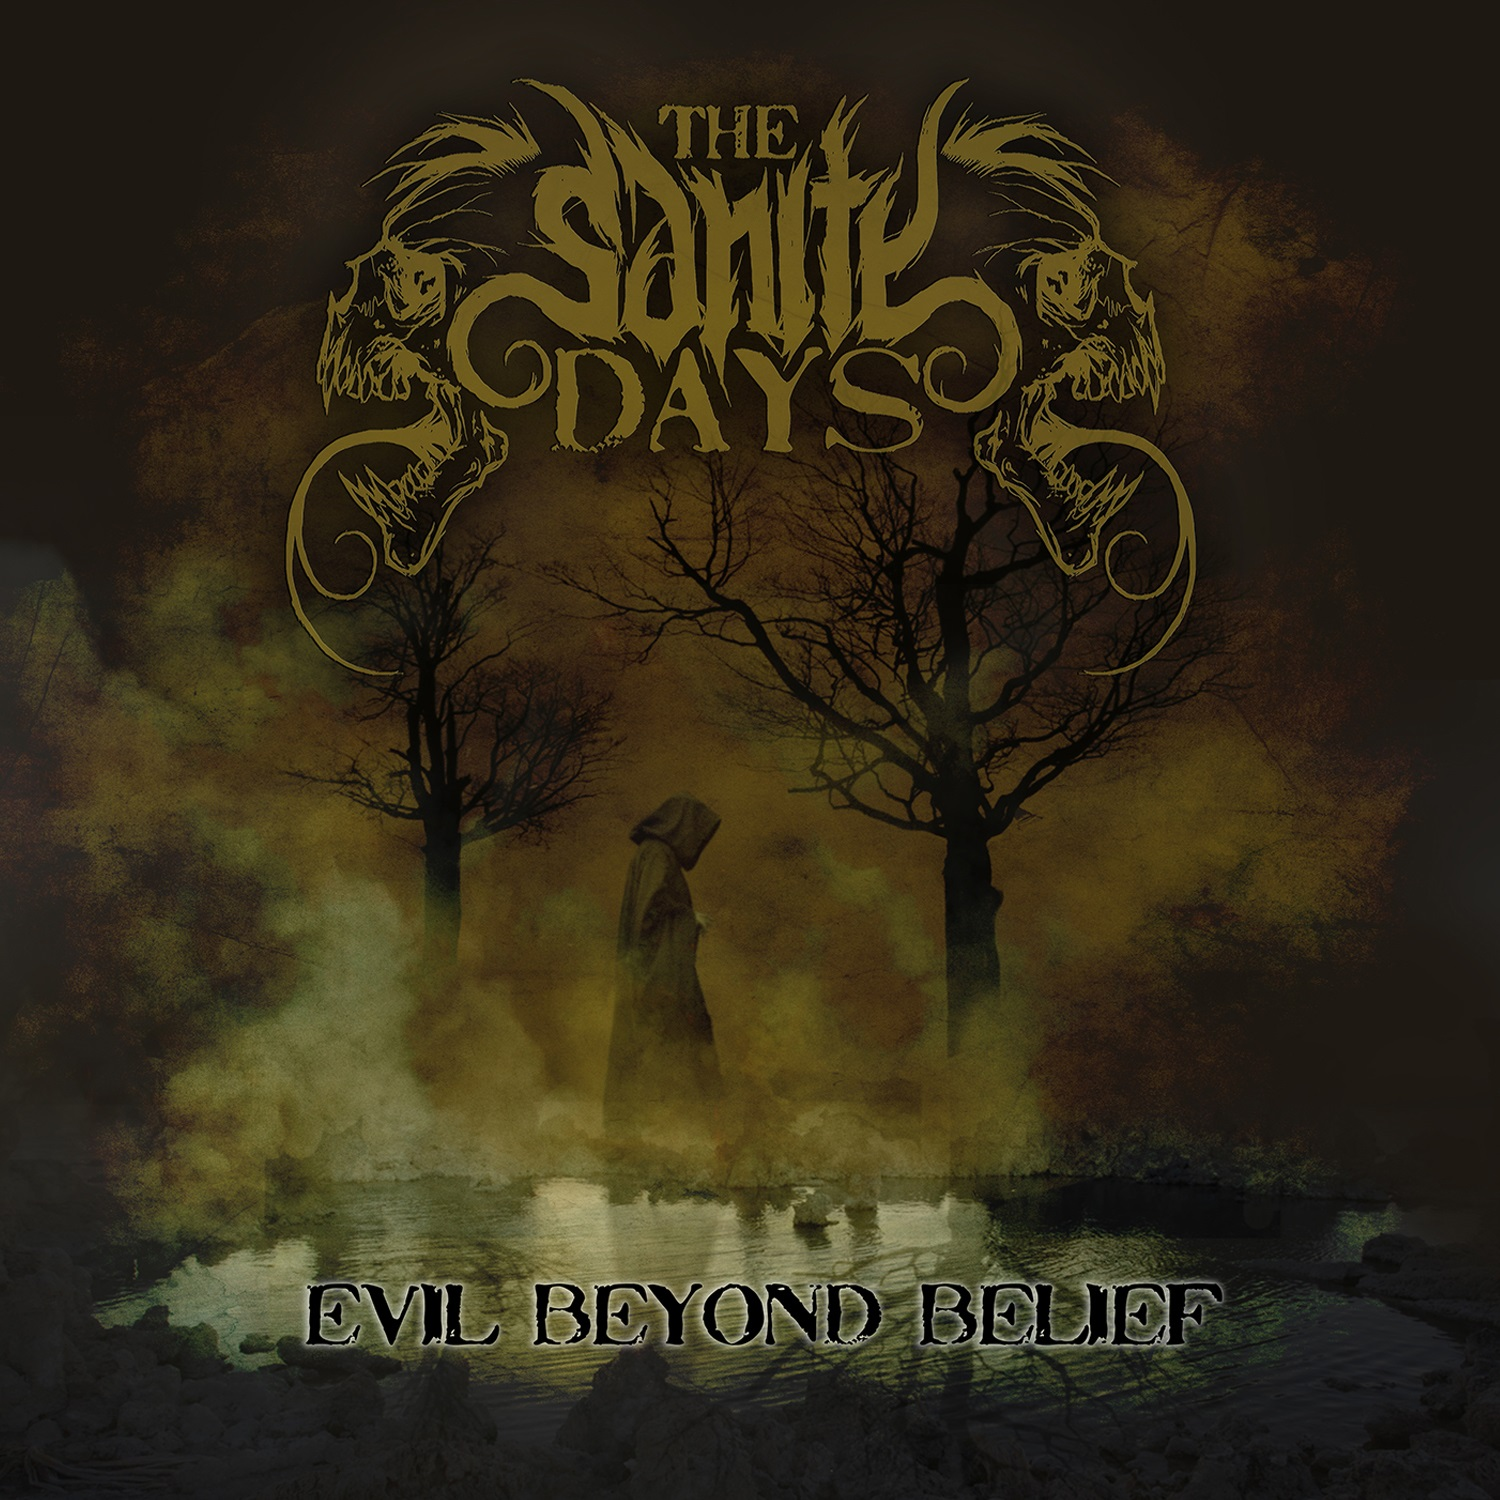 The Sanity Days – Evil Beyond Belief Review